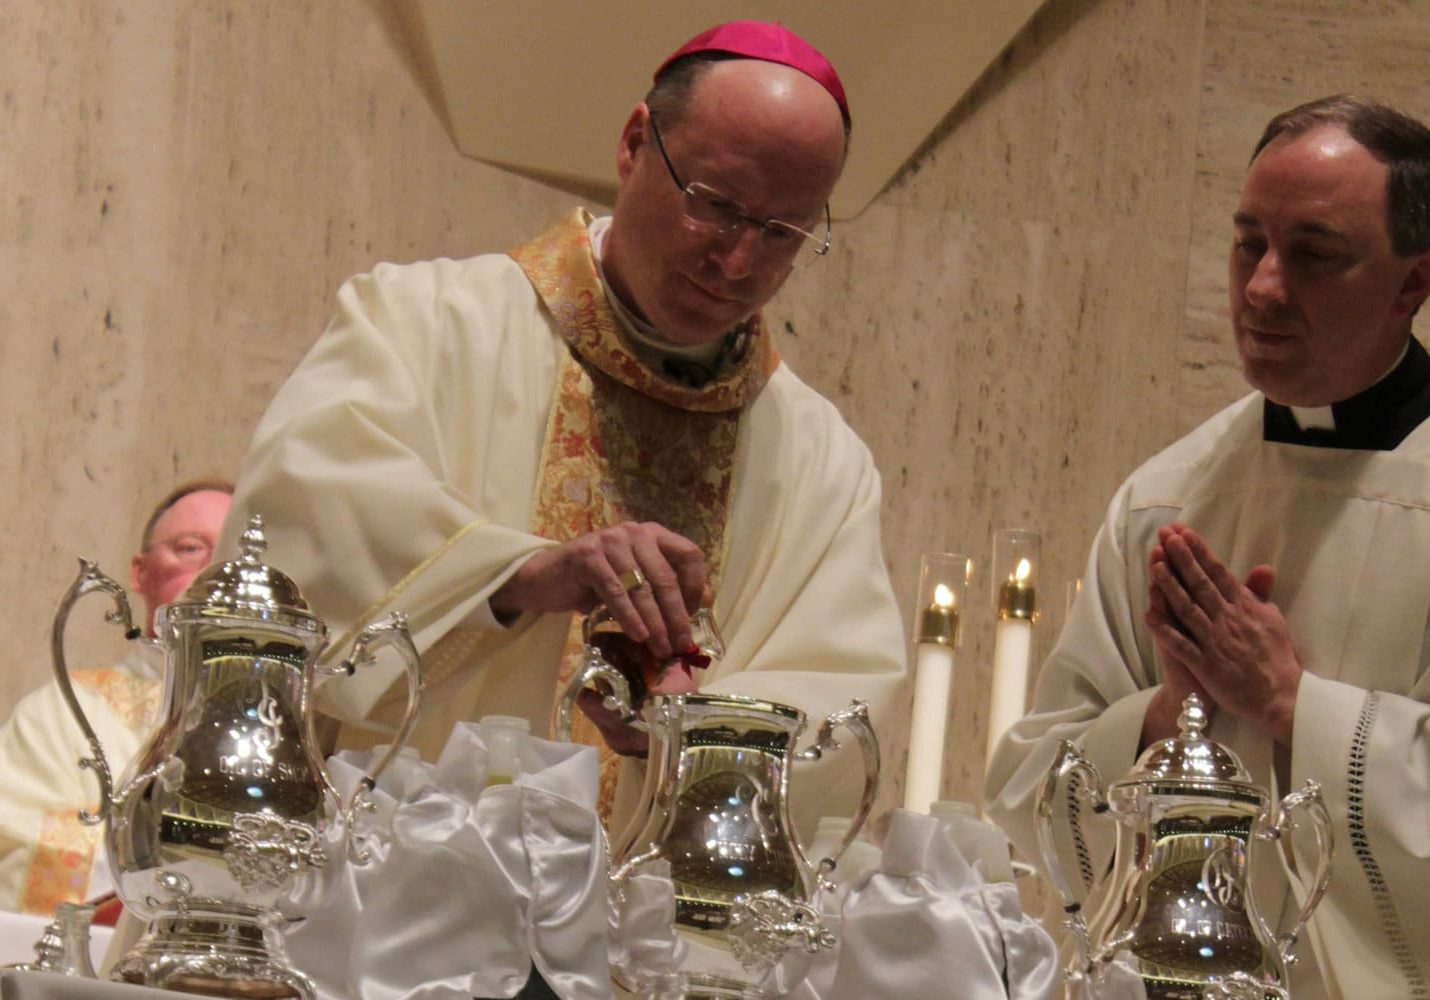 Chrism Mass 2019 at the Cathedral of St. Joseph